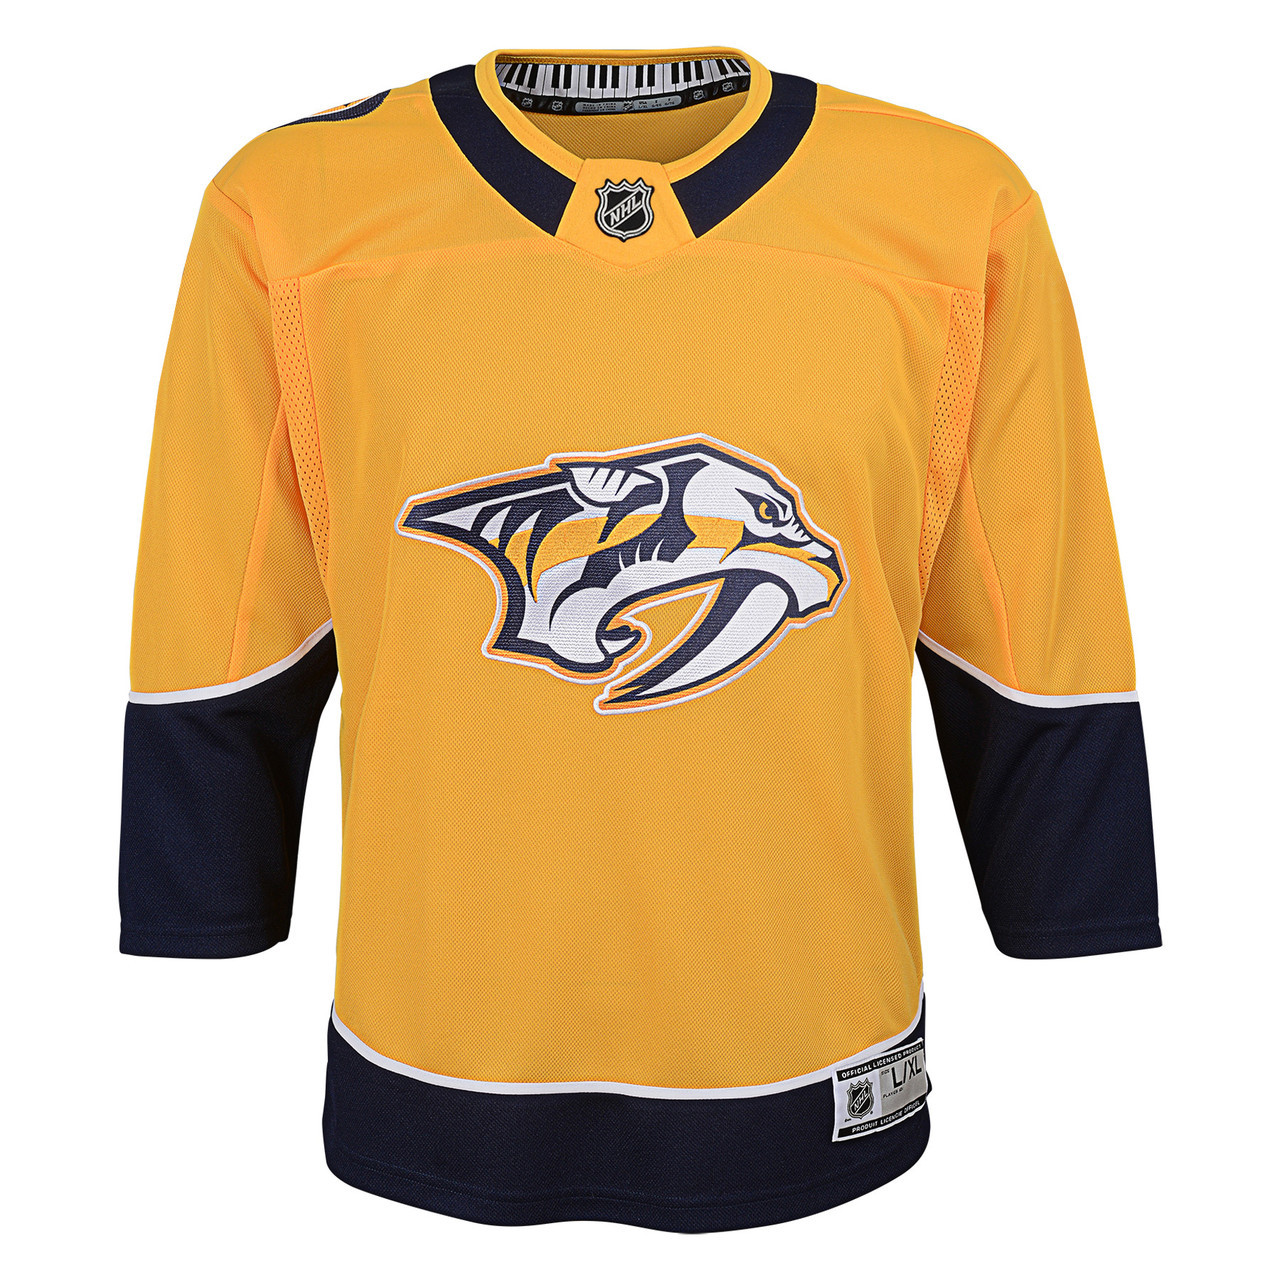 size 40 75c36 ebc23 Nashville Predators Youth Premier Jersey Home/ Gold